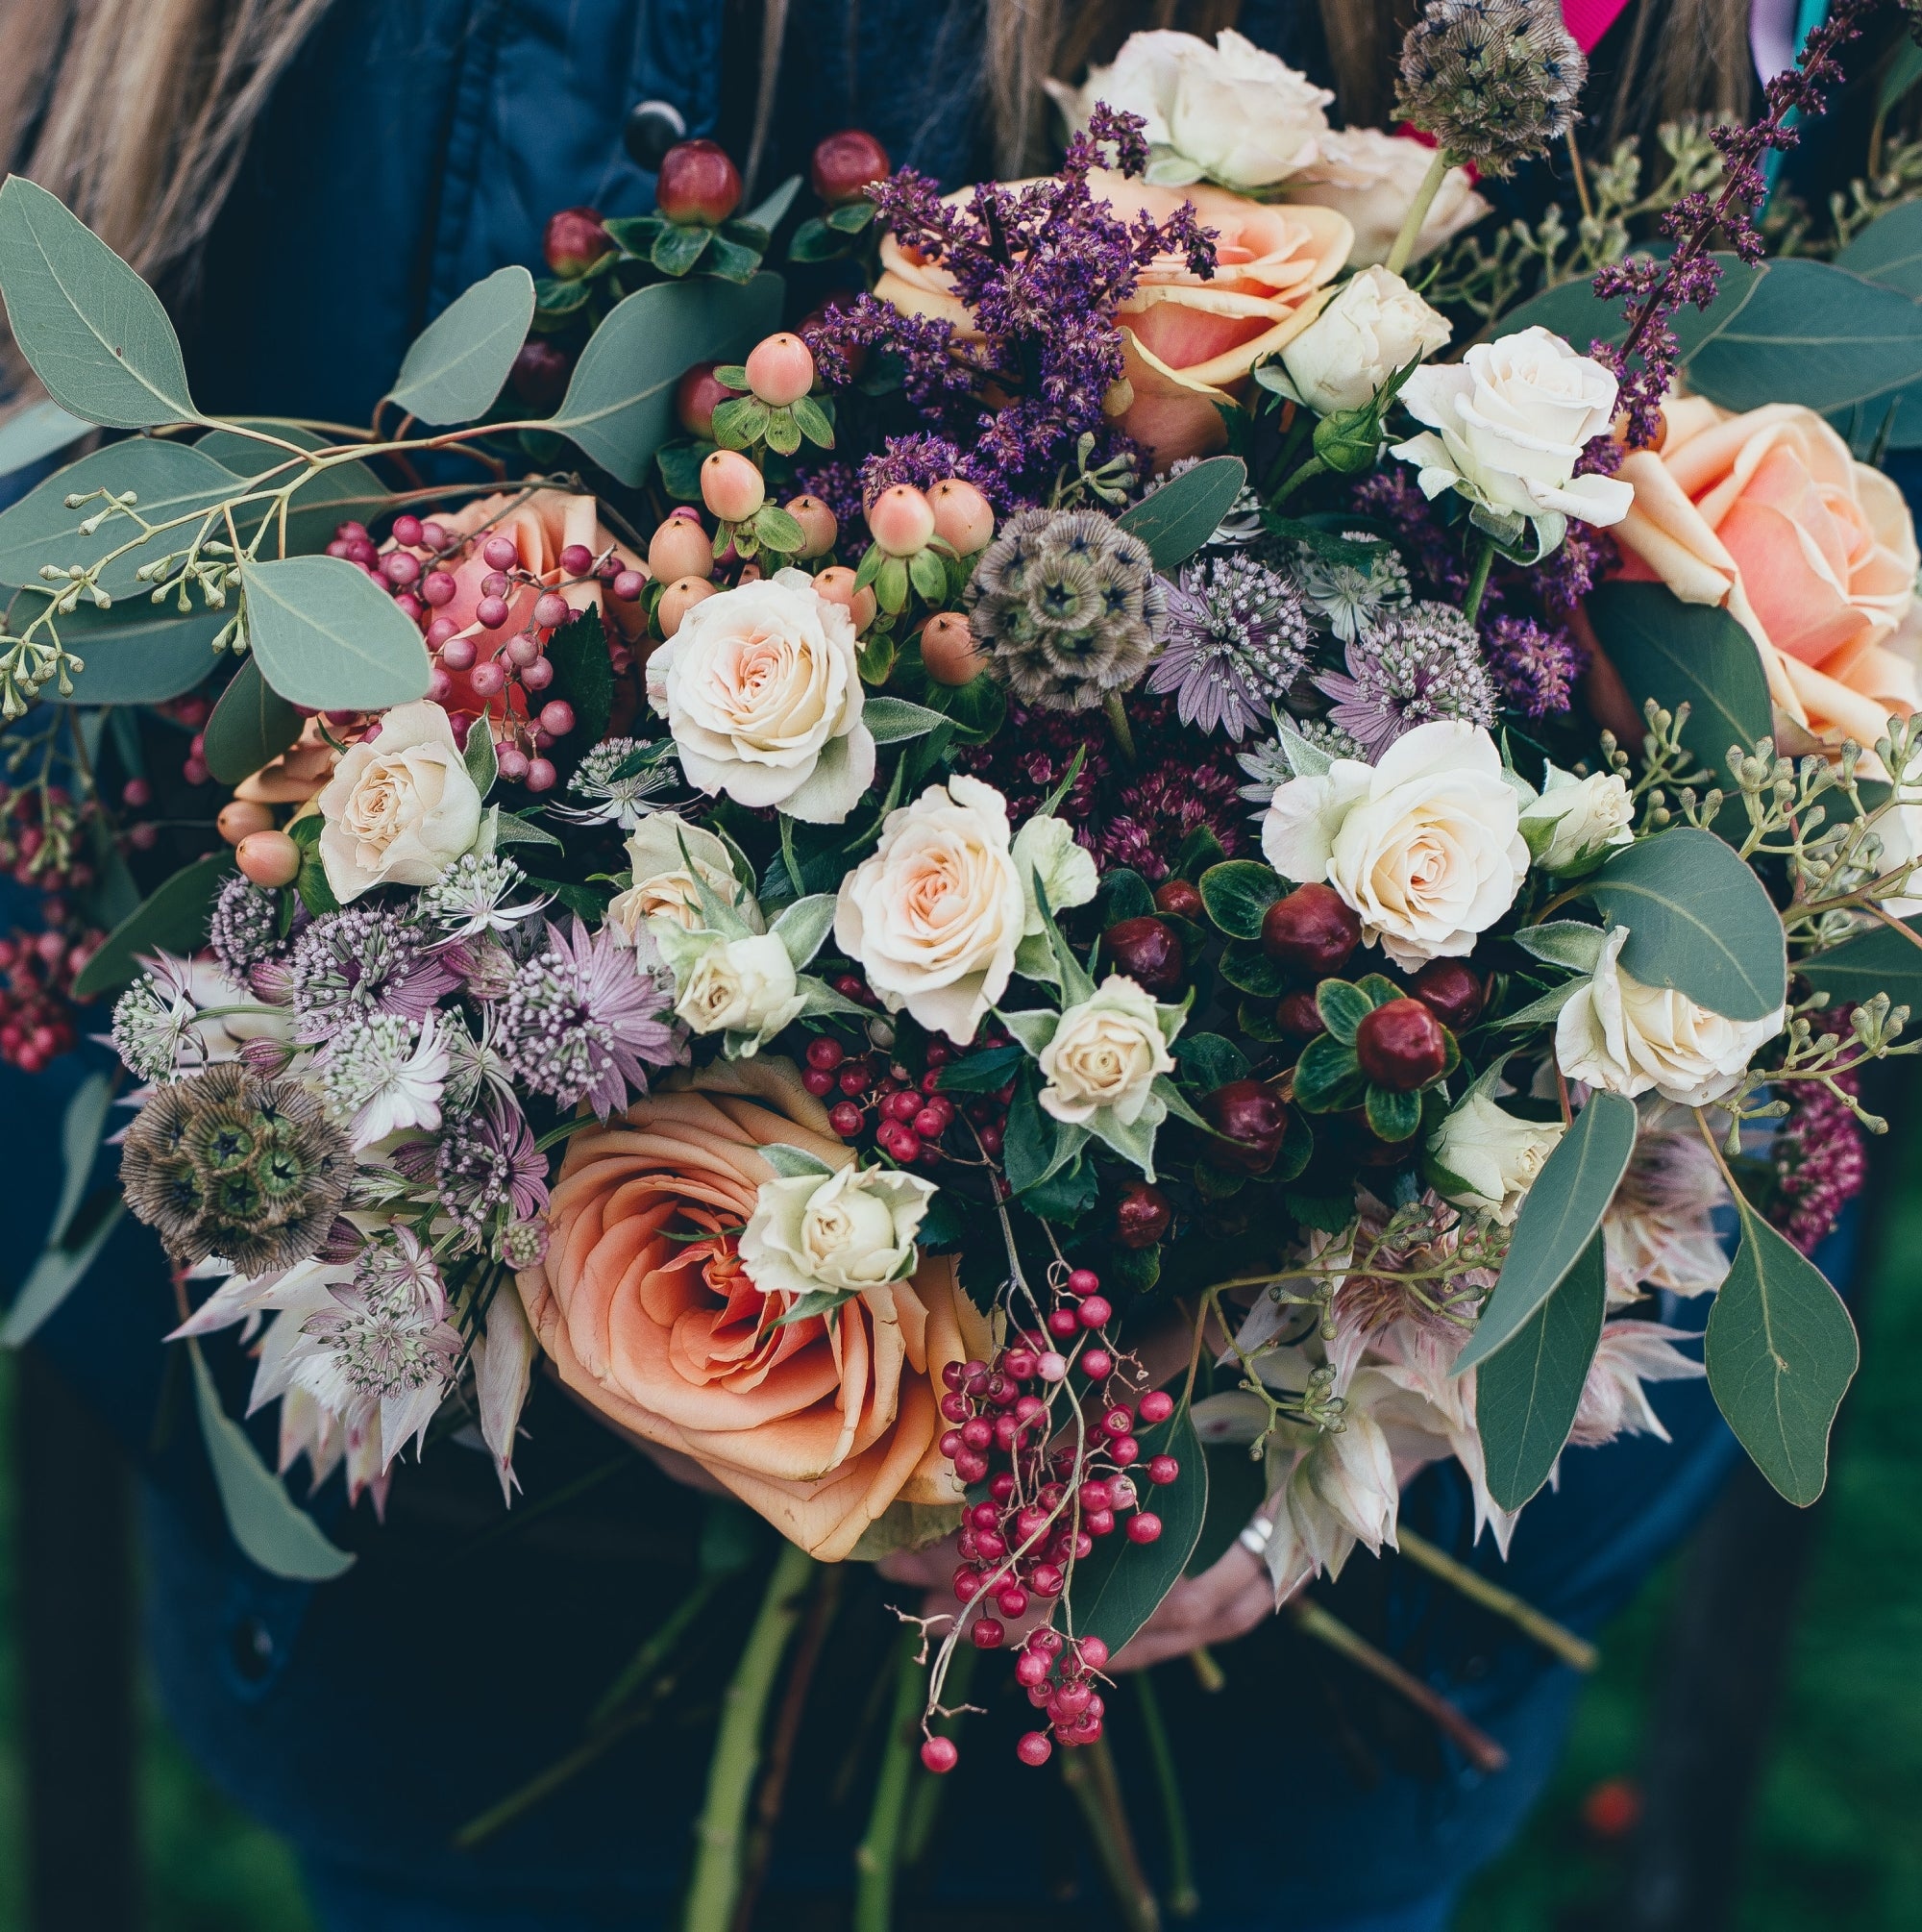 A bouquet of timeless flowers and their hidden meanings | Talsam